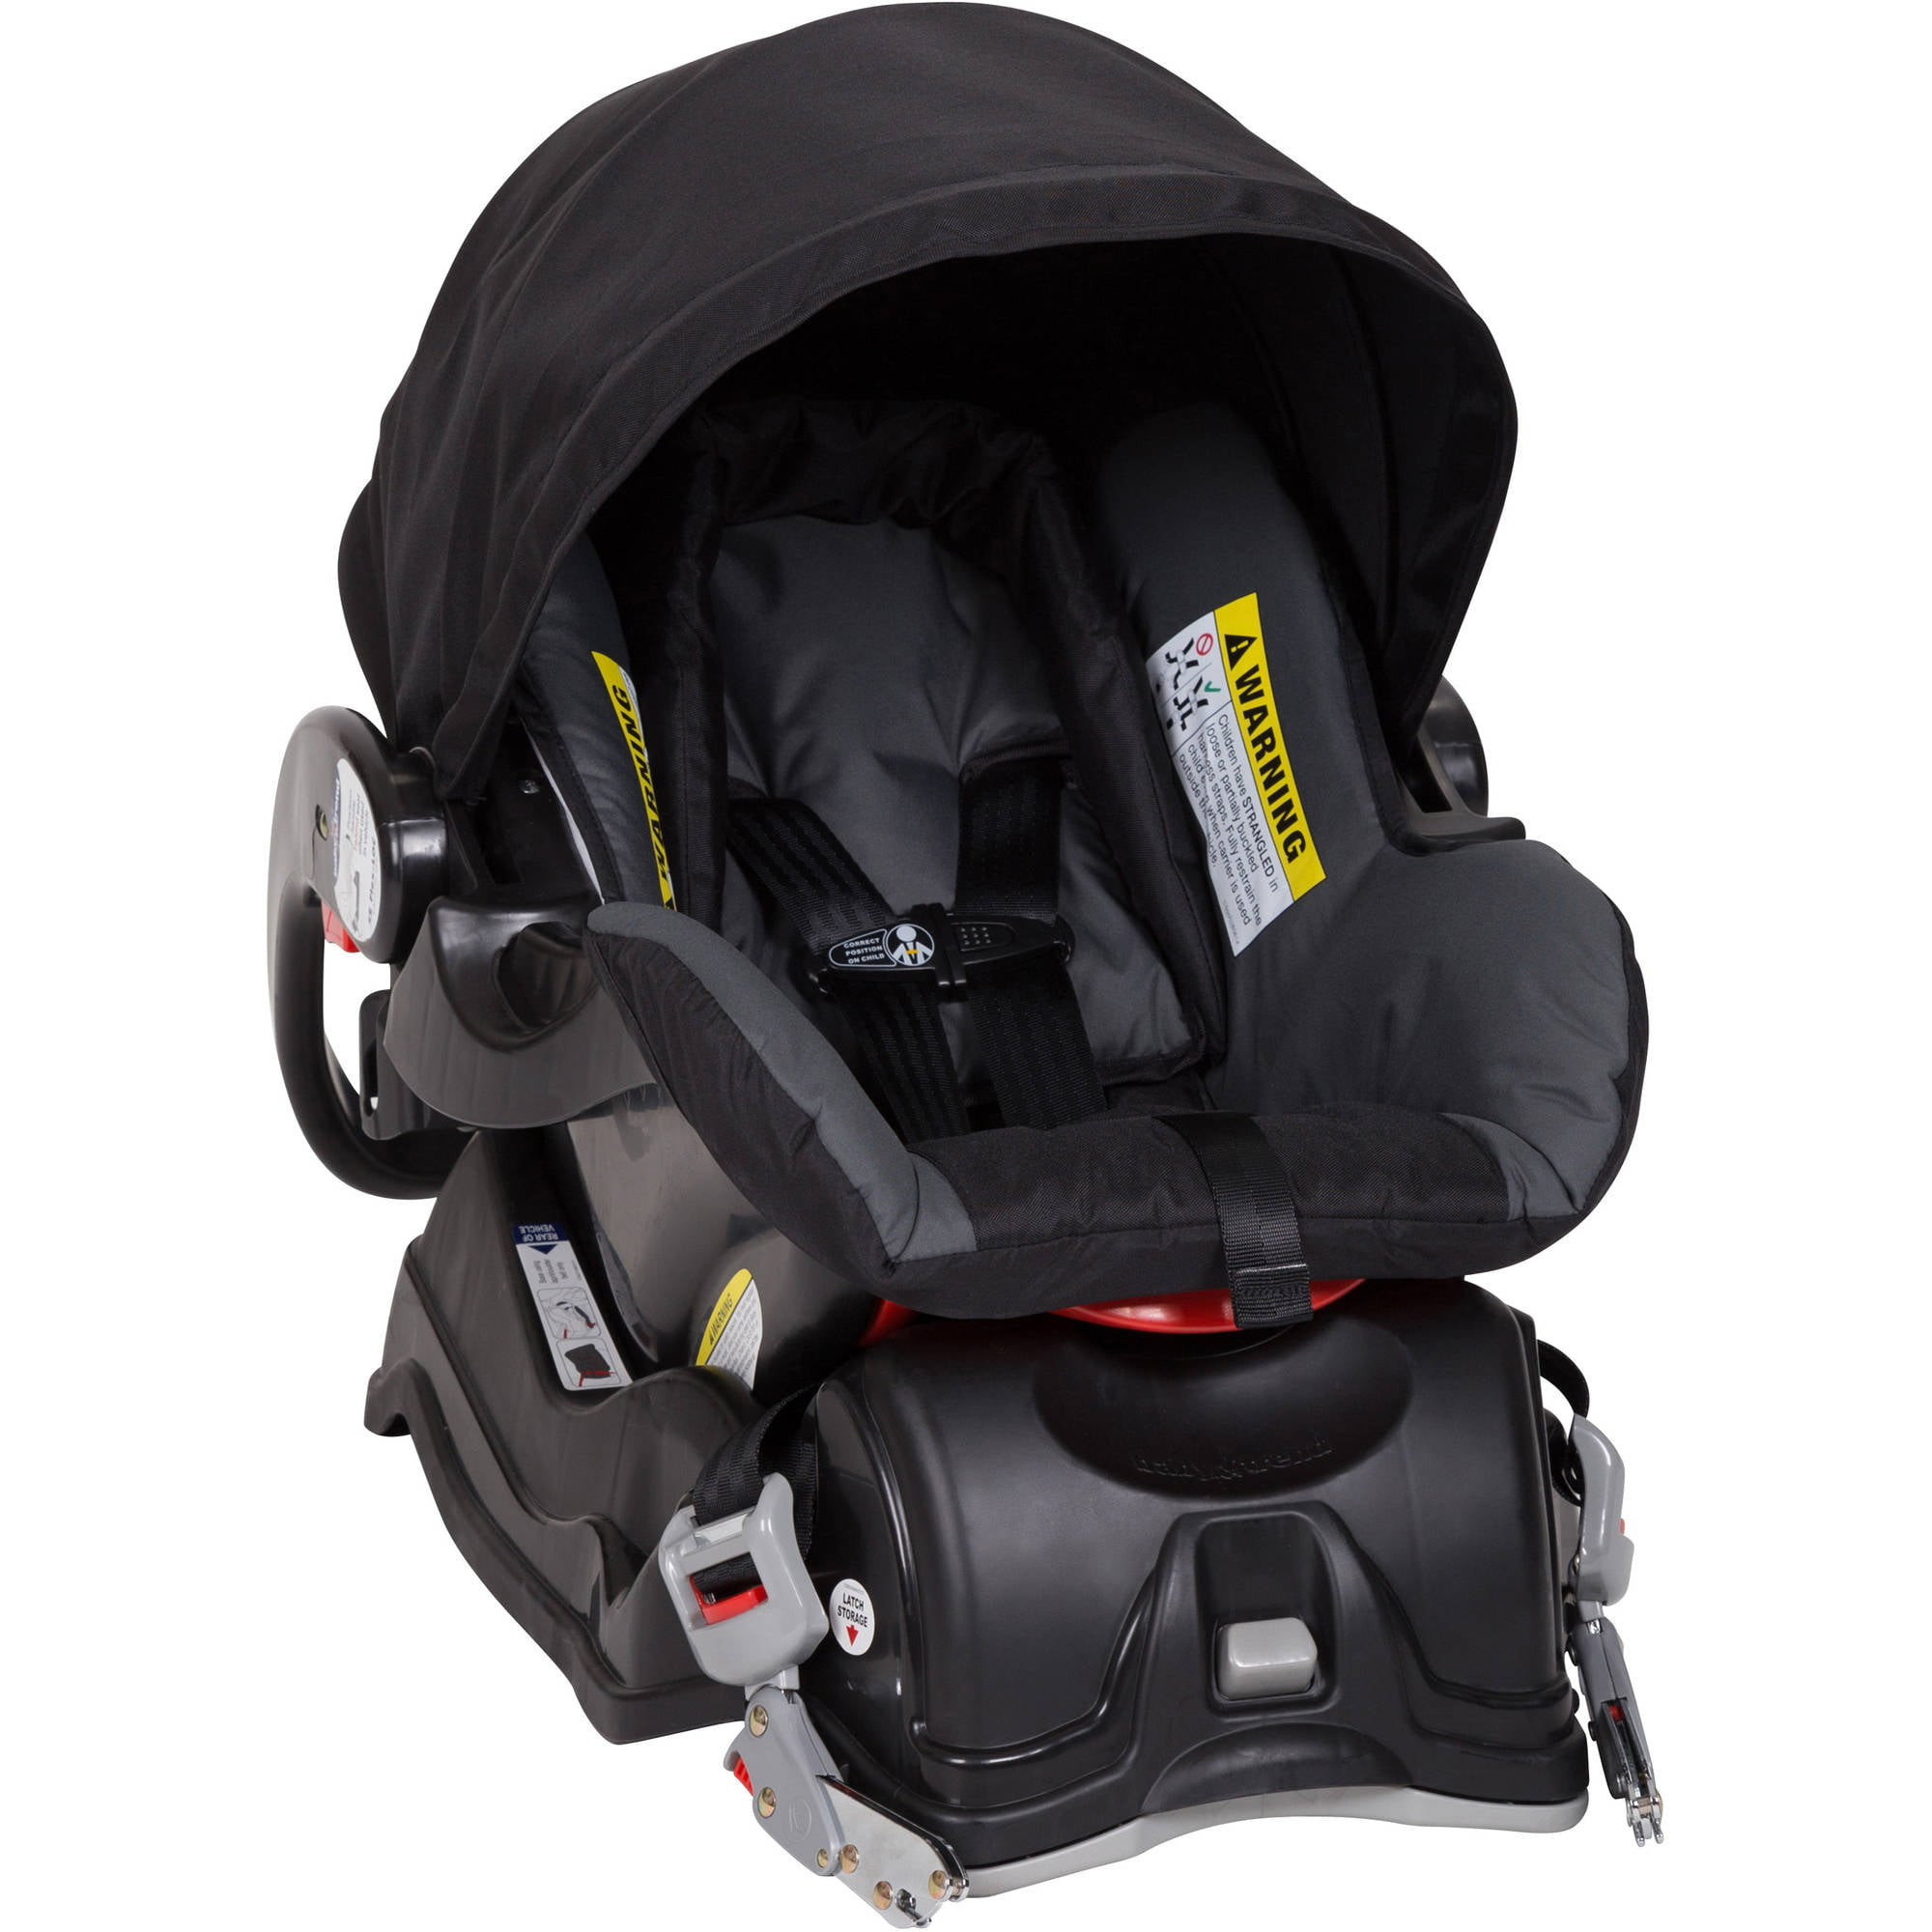 Infant Car Seat Boulder Smooth Ergonomic Carrying Handle 1